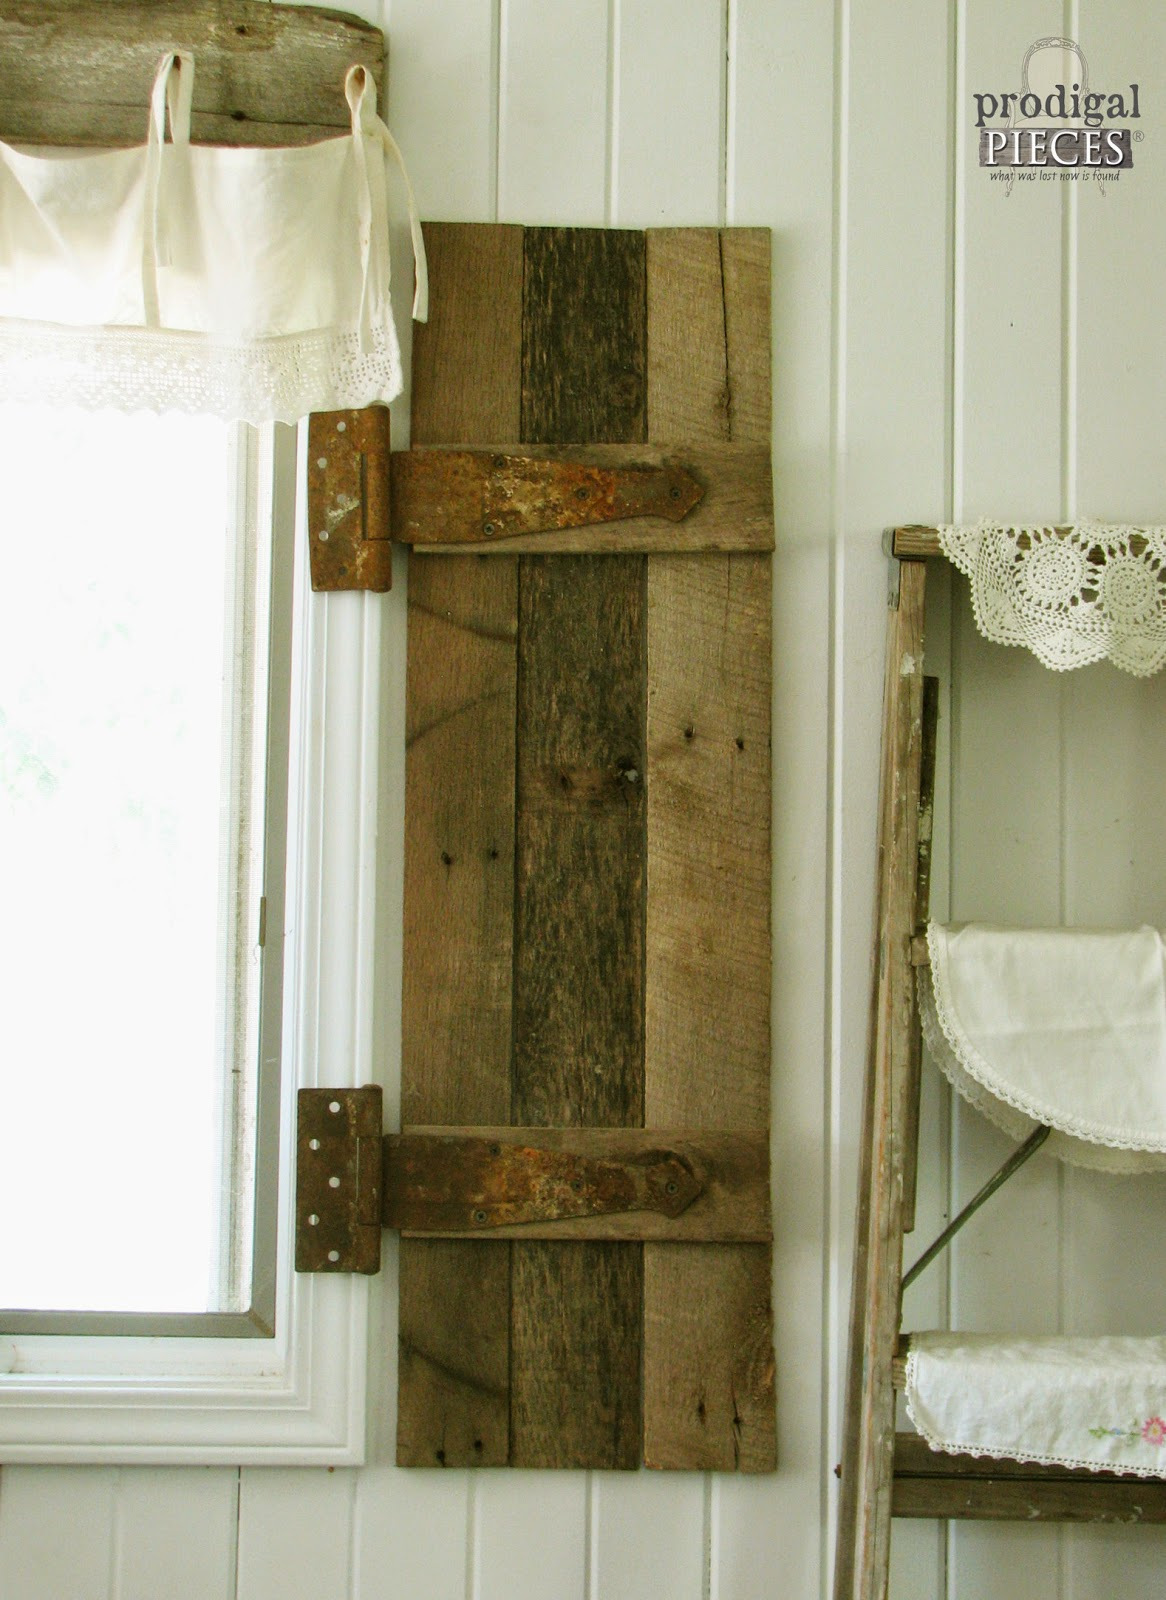 DIY Barn Wood Shutters from Repurposed Pallets by Prodigal Pieces http://www.prodigalpieces.com